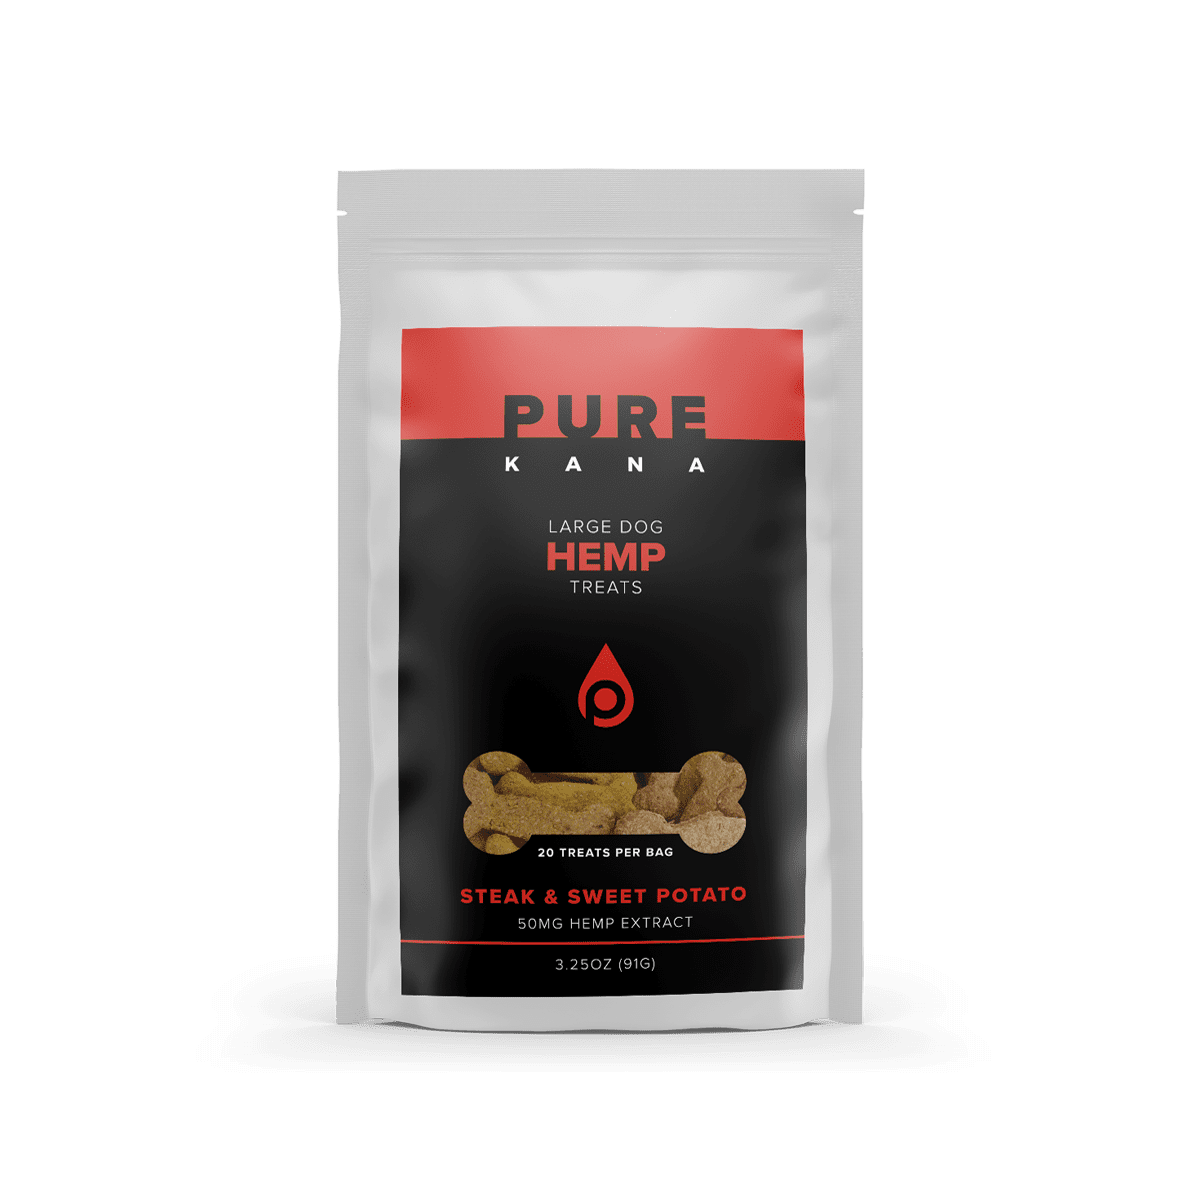 Hemp Dog Treats (Large Dog) – Steak & Sweet Potato